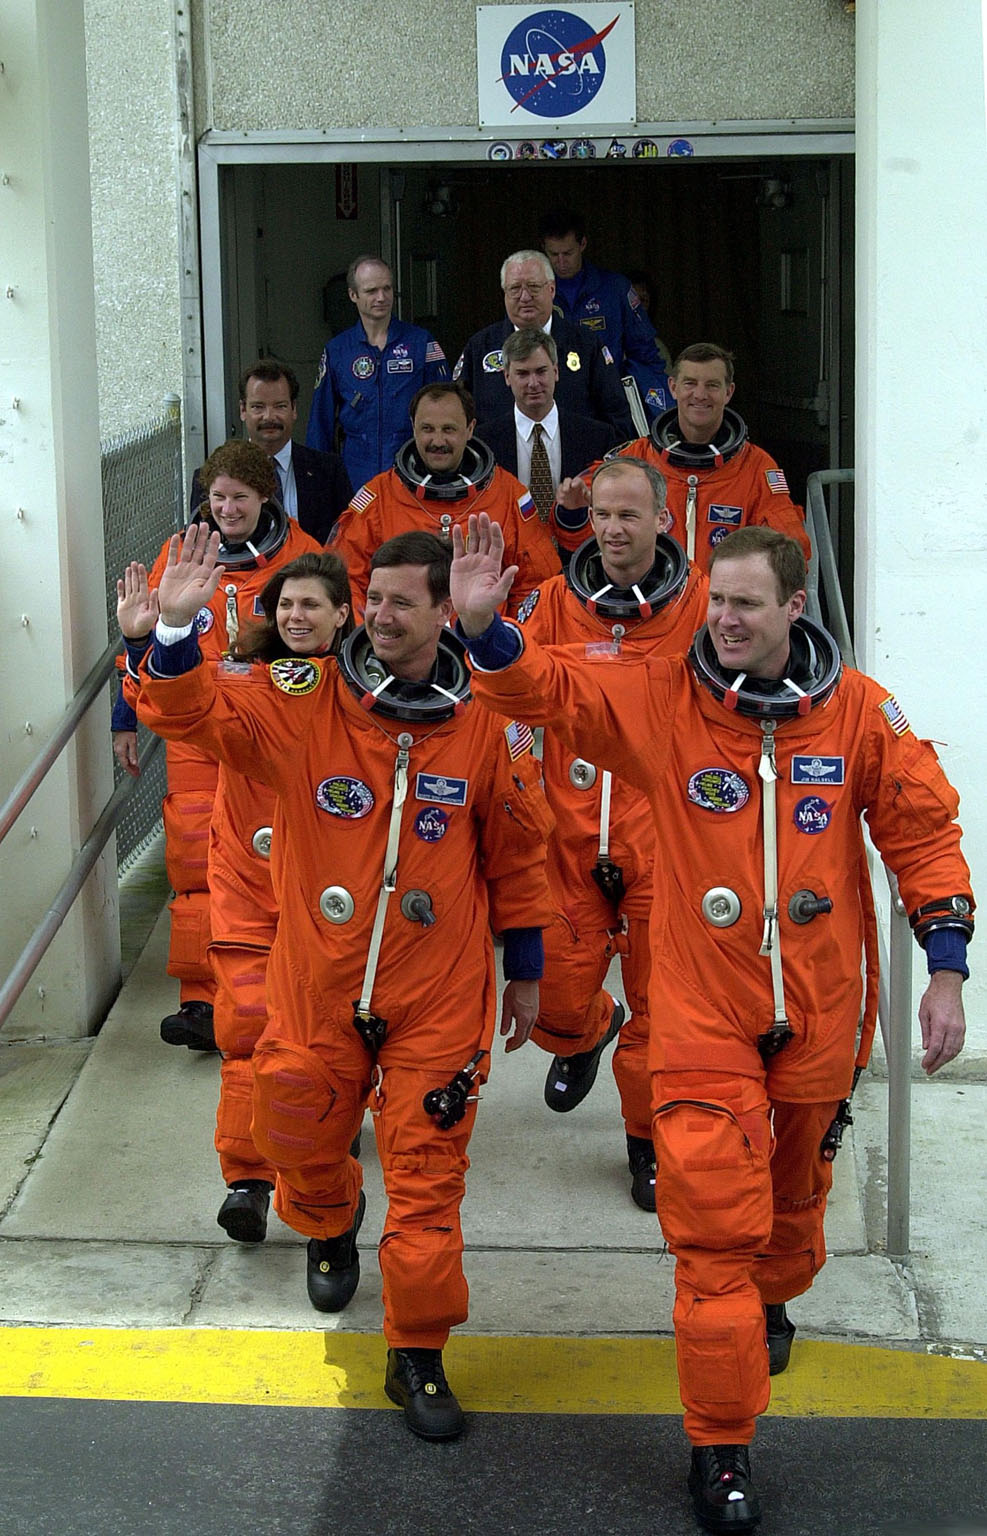 (Nikon D1 Test) The STS-101 crew wave to onlookers as they leave the Operations and Checkout Building enroute for the second time to Launch Pad 39A and another attempt at liftoff of Space Shuttle Atlantis. In their orange launch and entry suits, they are (front line) Pilot Scott J. Horowitz and Commander James D. Halsell Jr.; (second line) Mission Specialists Mary Ellen Weber and Jeffrey N. Williams; and (third line) Mission Specialists Susan J. Helms, Yury Usachev of Russia and James S. Voss The first attempt on April 24 was scrubbed due to unfavorable weather conditions. The mission will take the crew to the International Space Station to deliver logistics and supplies and to prepare the Station for the arrival of the Zvezda Service Module, expected to be launched by Russia in July 2000. Also, the crew will conduct one space walk. This will be the third assembly flight to the Space Station. Liftoff is targeted for 3:52 p.m. EDT. The mission is expected to last about 10 days, with Atlantis landing at KSC Saturday, May 6, about 11:53 a.m. EDT